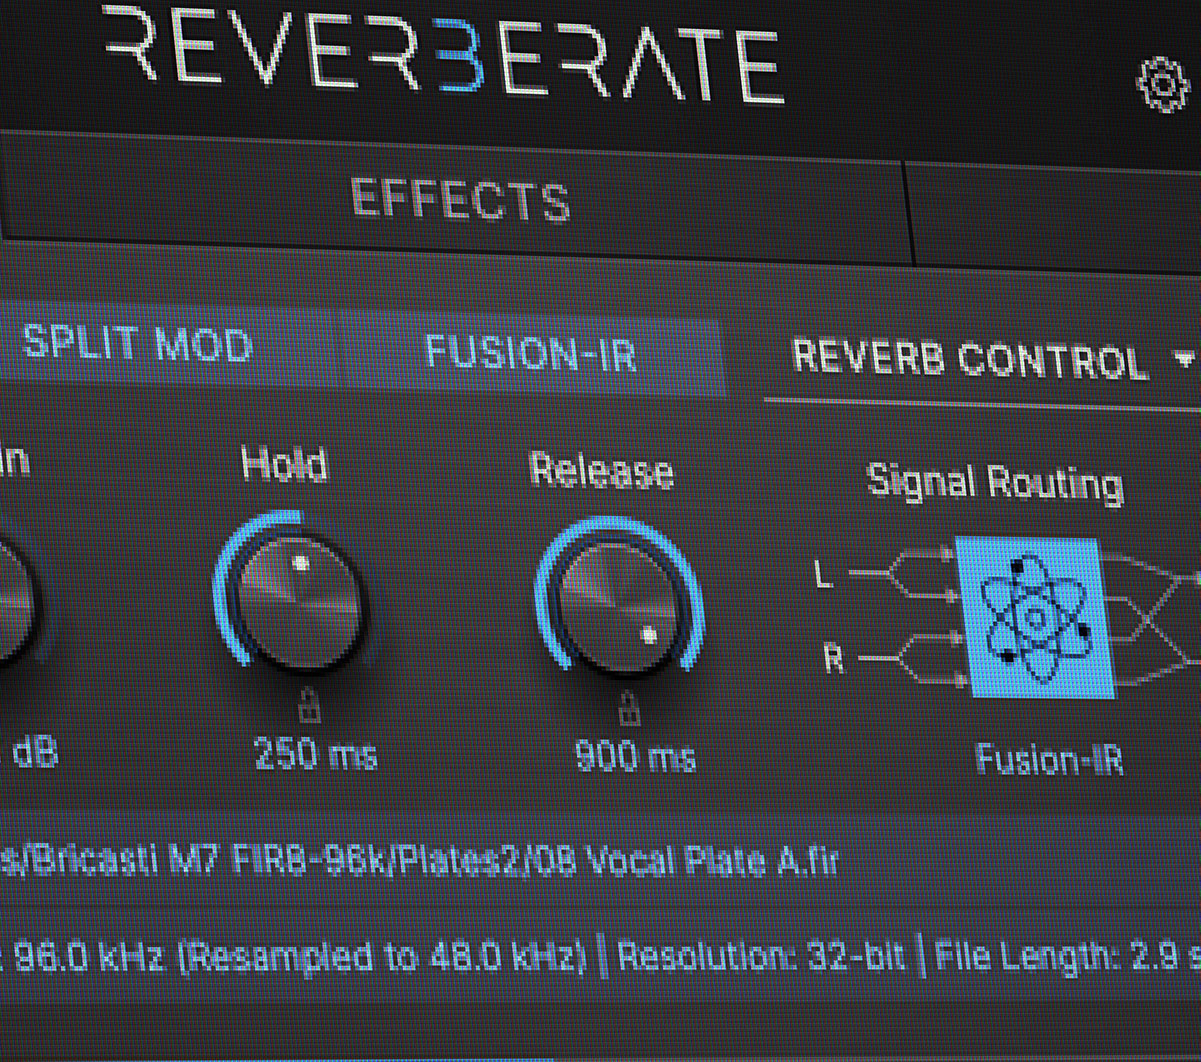 Reverberate 3 Software Boxout